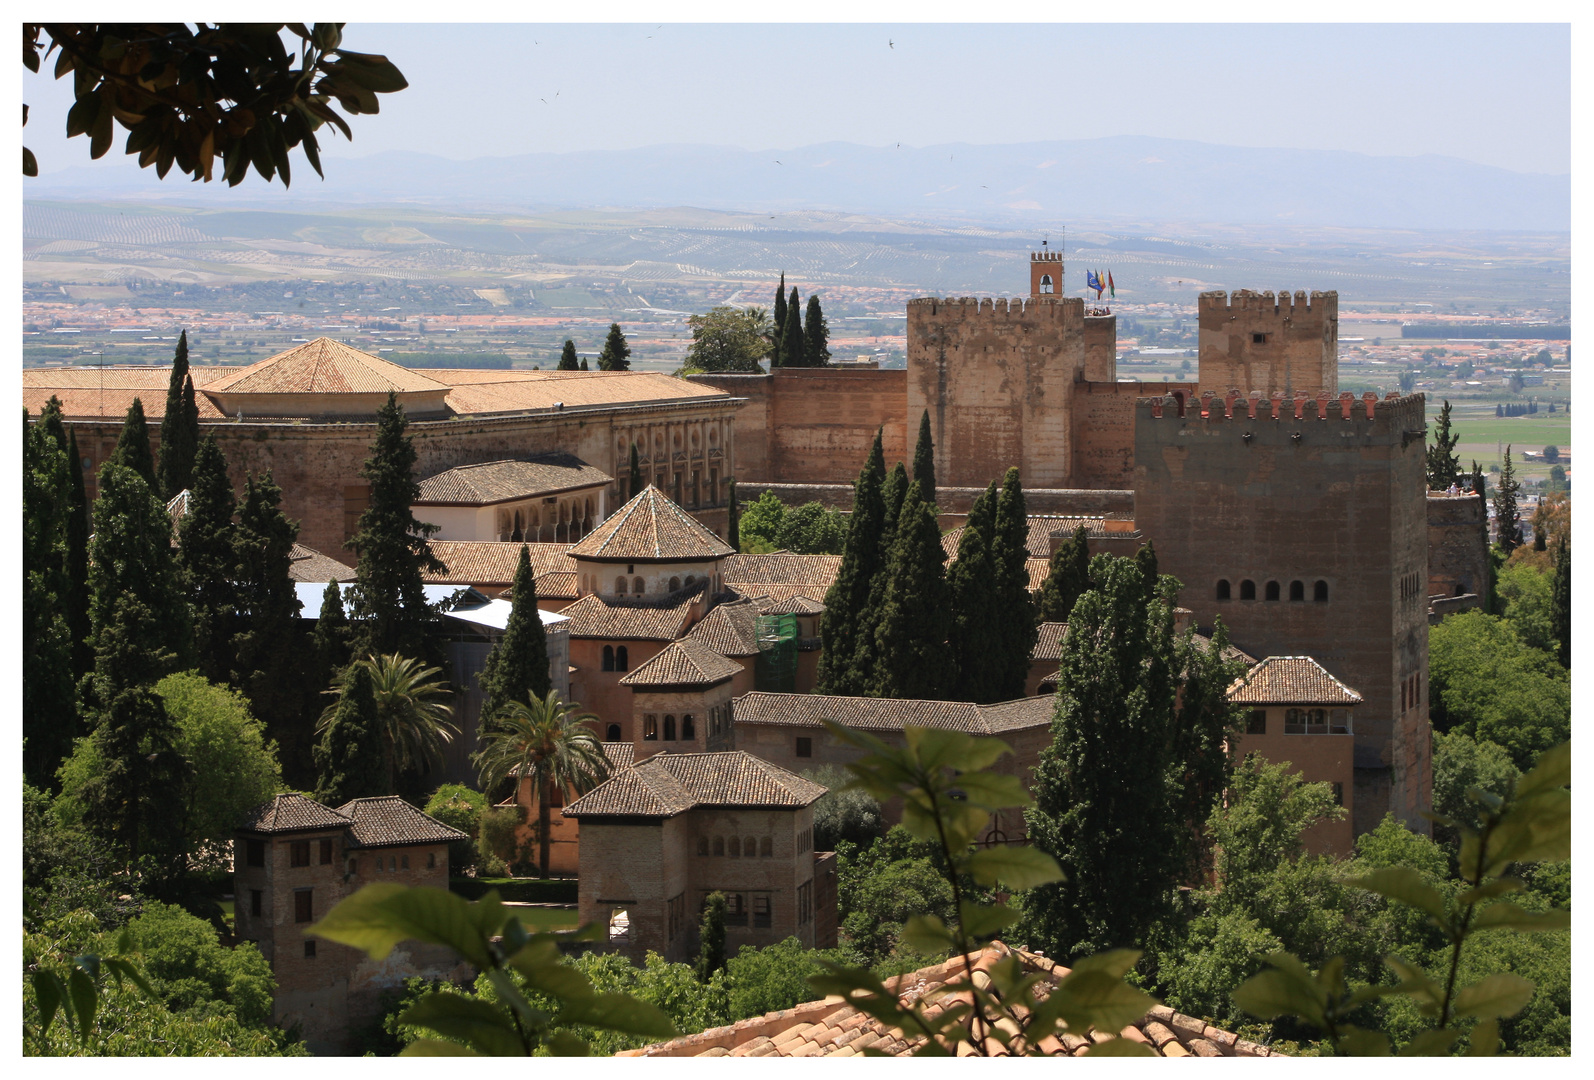 The Alhambra...